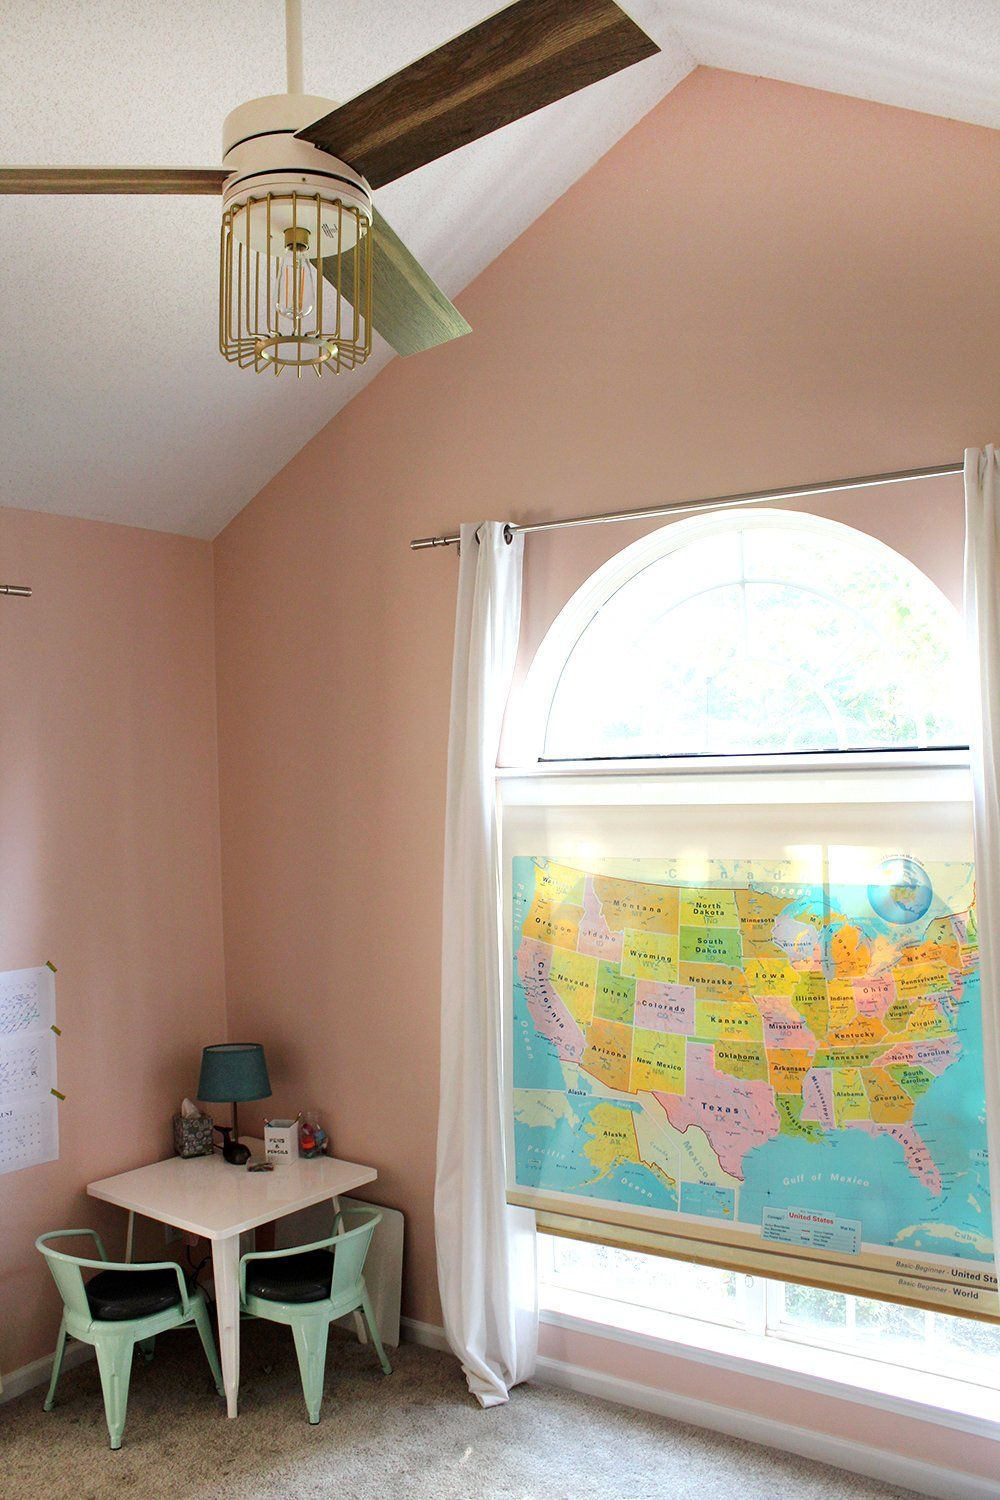 Pop out kitchen window  diy thrifted school map upcyled to a window shade  guest bedroom